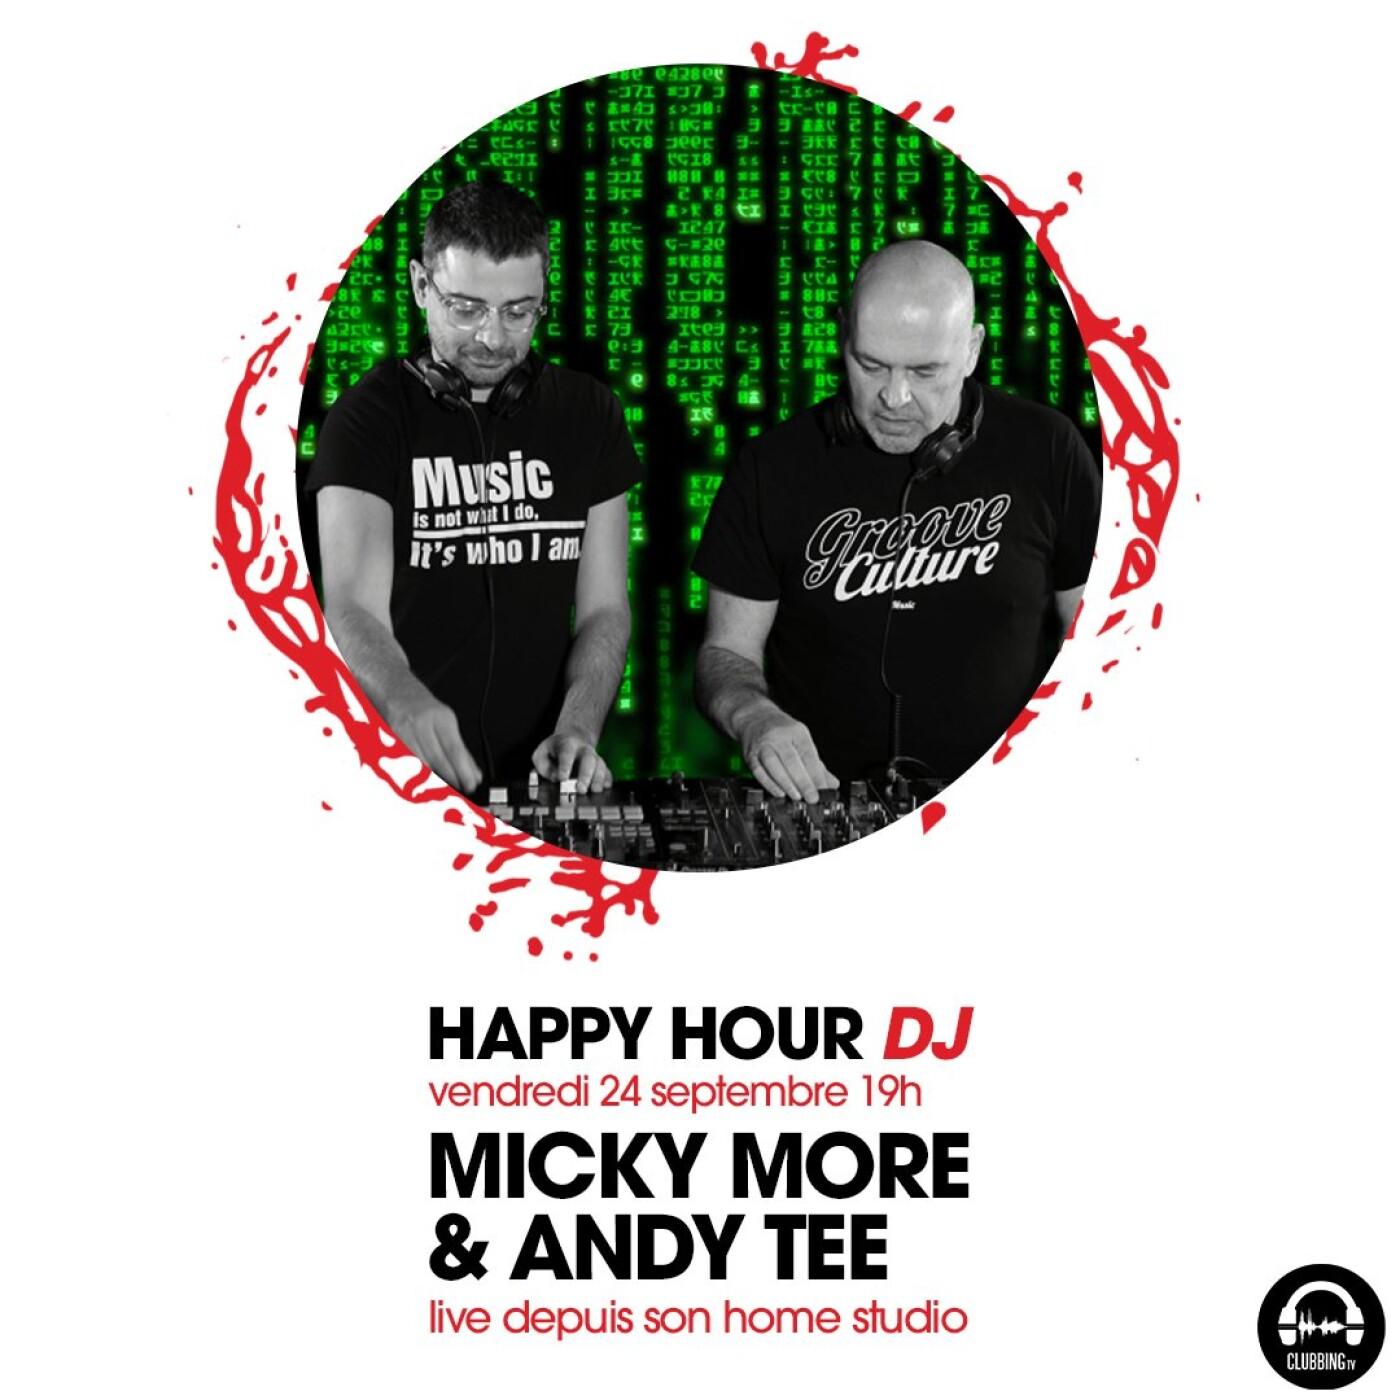 HAPPY HOUR DJ : MICKY MORE & ANDY TEE